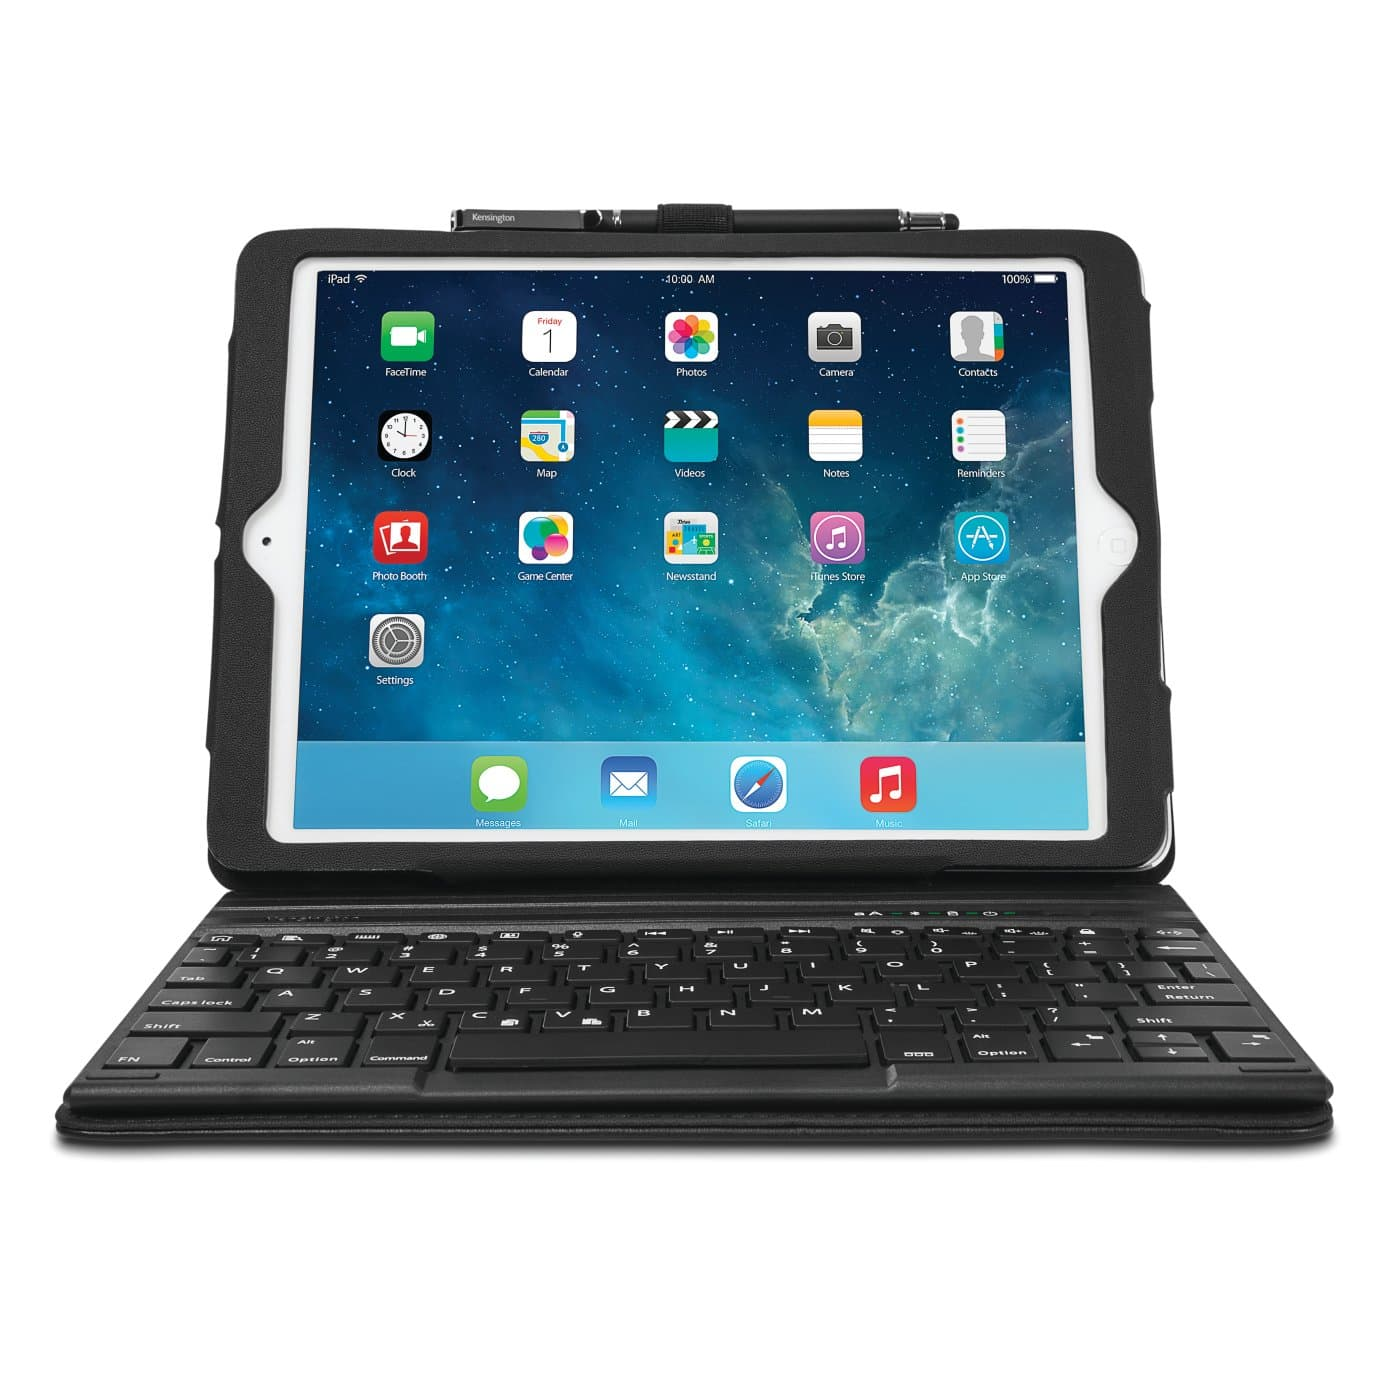 Kensington - Products - Tablet & Smartphone Accessories